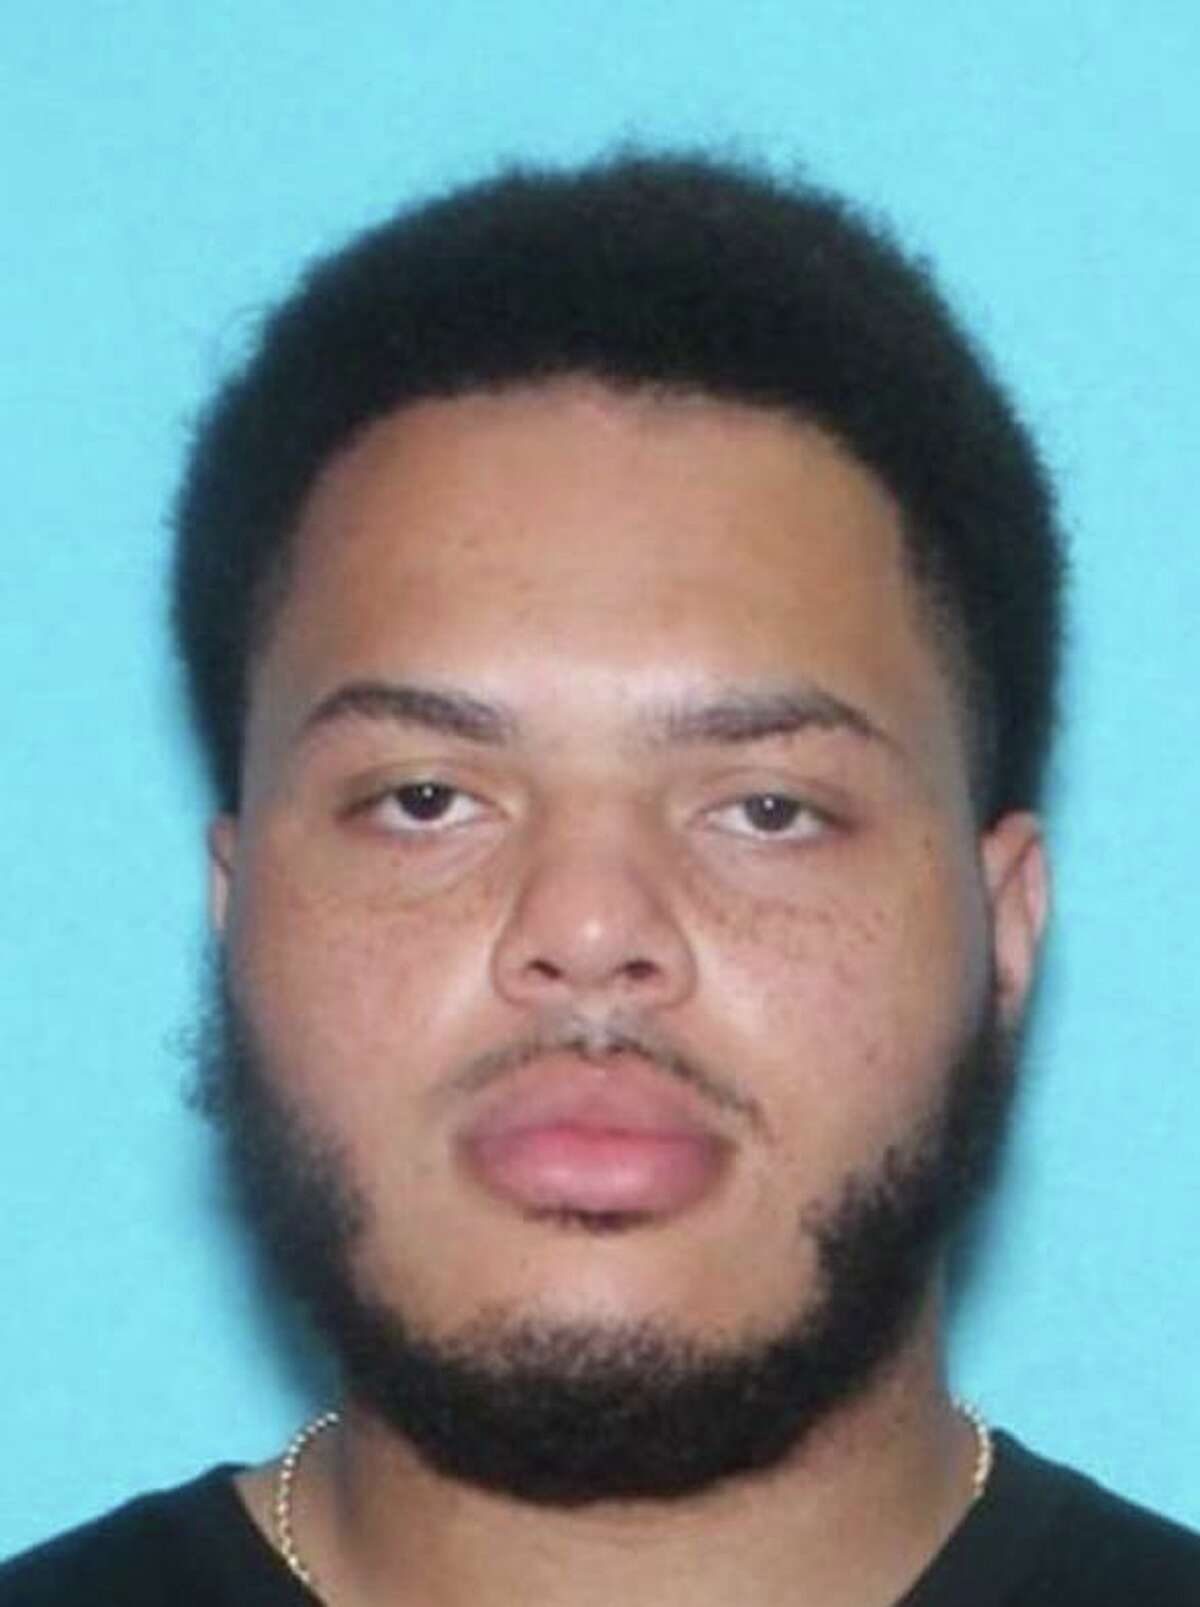 Deontae Boykin turned himself in to police after he learned of an arrest warrant charging him in the September 24, 2020, homicide of Raymond Sierra. Boykin is charged with felony murder and first-degree criminal attempt at robbery.